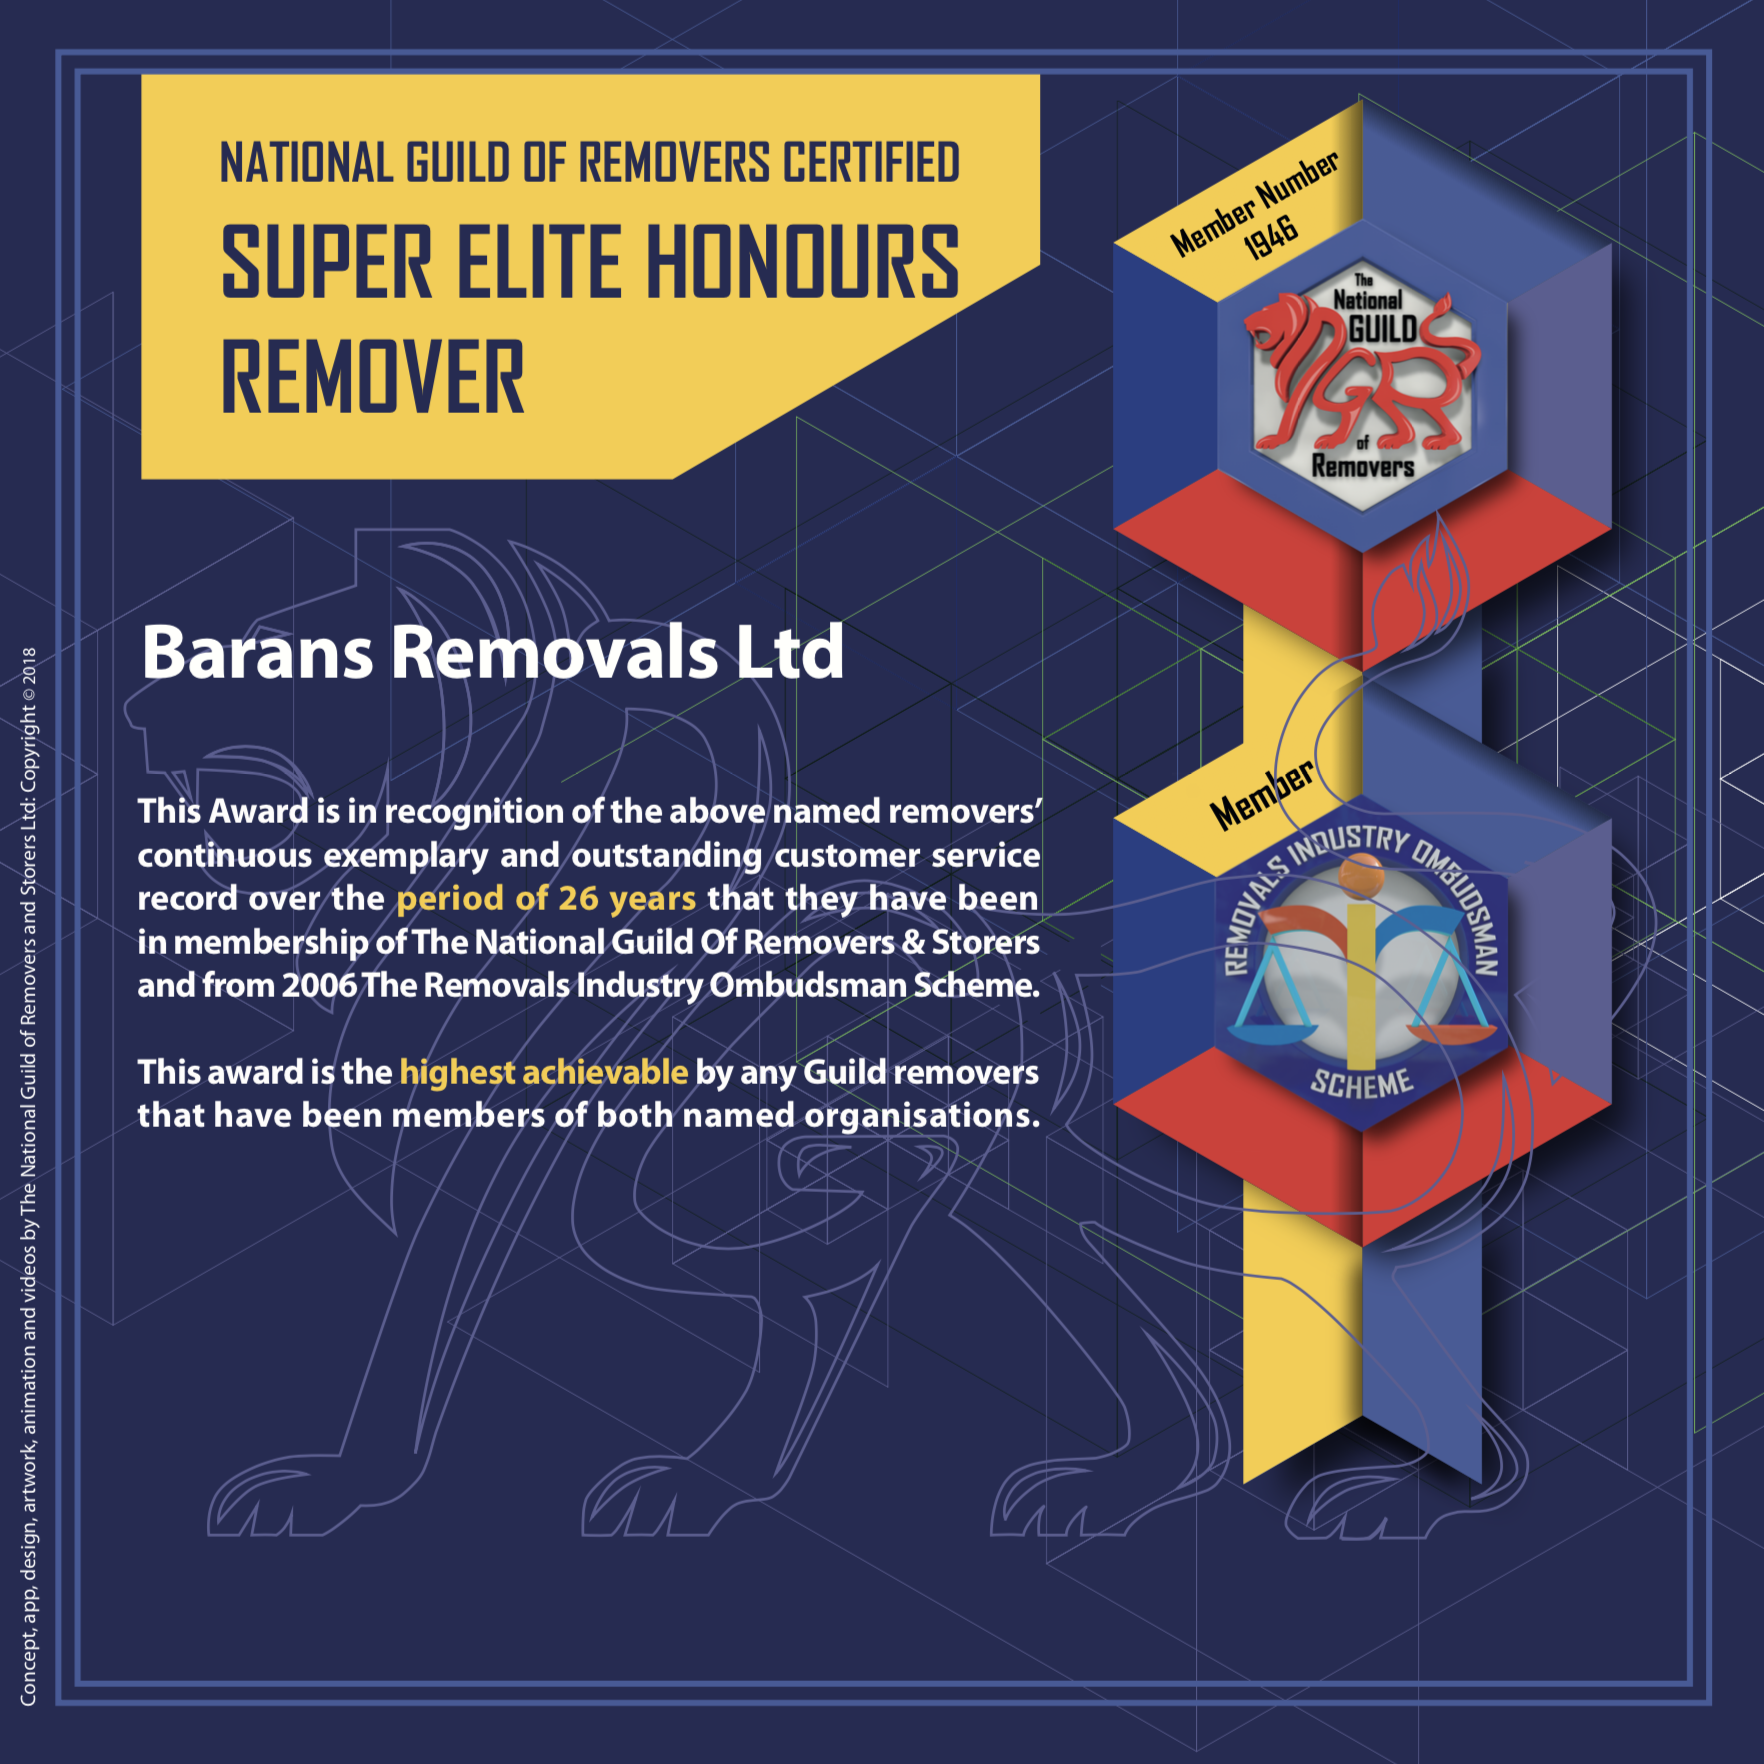 National Guild of Removers and Storers - Super Elite Remover